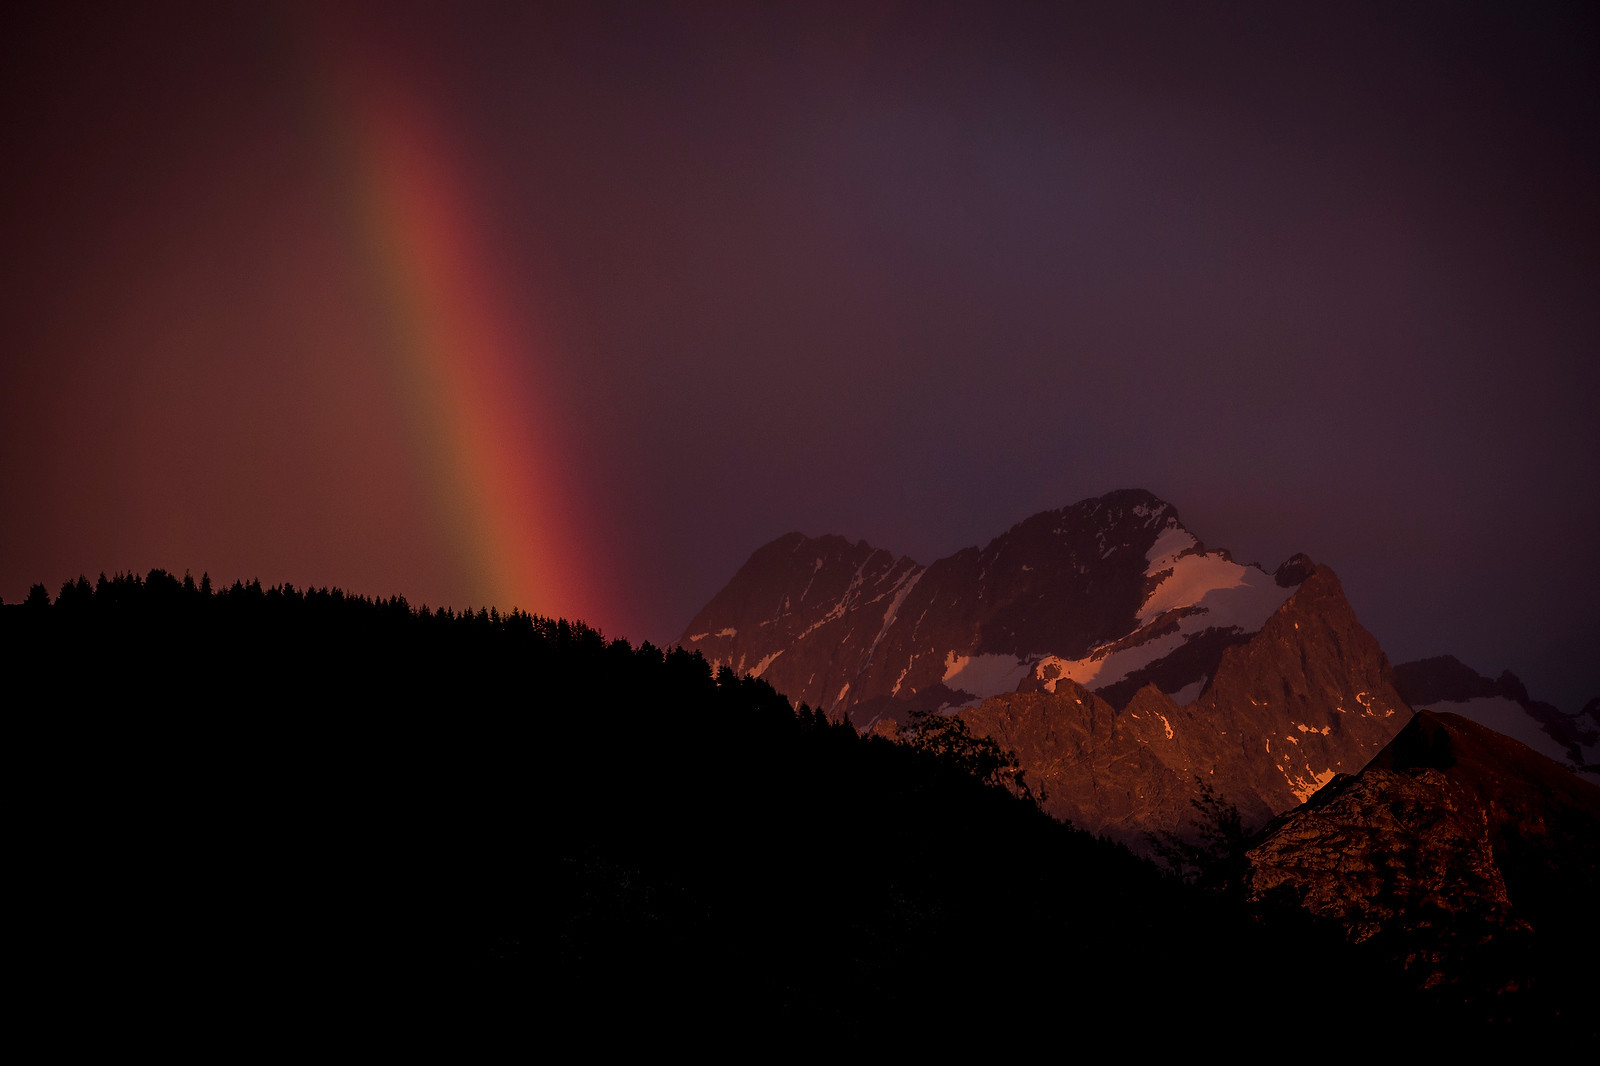 Epic Rainbow and Alpenglow from Crankworx L2A - Crankworx L2A - Air Downhill Photo Action - Mountain Biking Pictures - Vital MTB